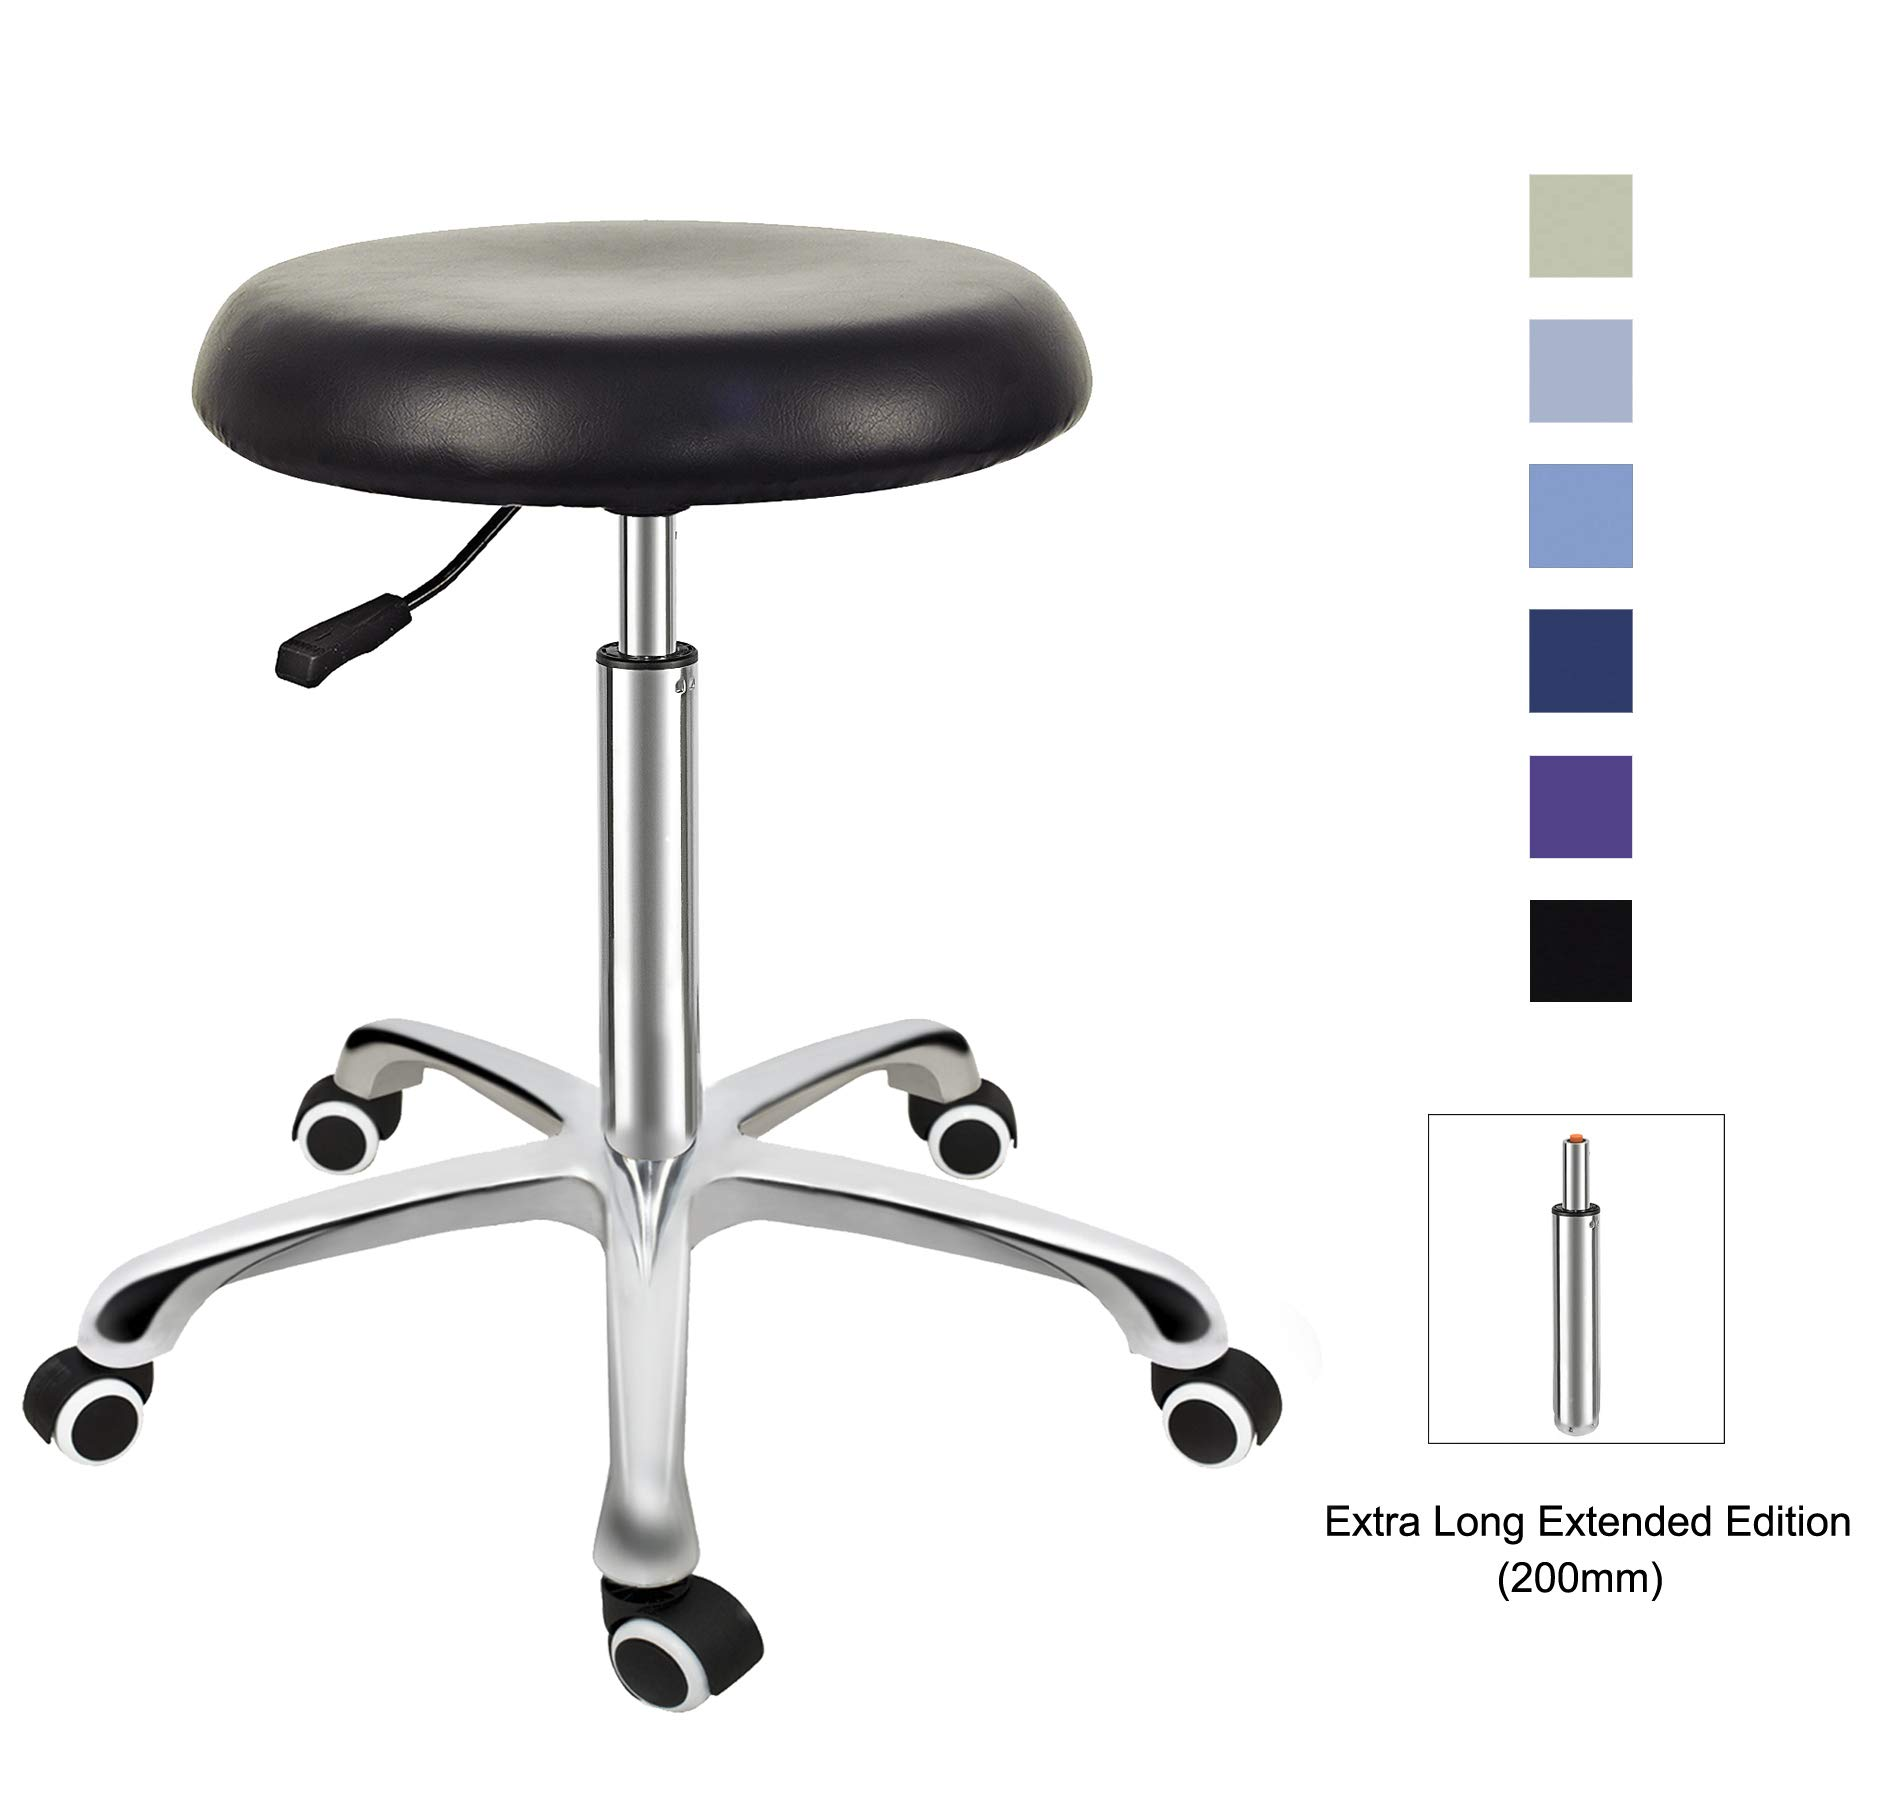 Grace & Grace Professional Task Stool Chair LUX Series Extra Large Seat Rolling Swivel Pneumatic Adjustable Heavy Duty for Dentist, Shop, Office and Home (Without Backrest Steel Base, Black) by Grace & Grace